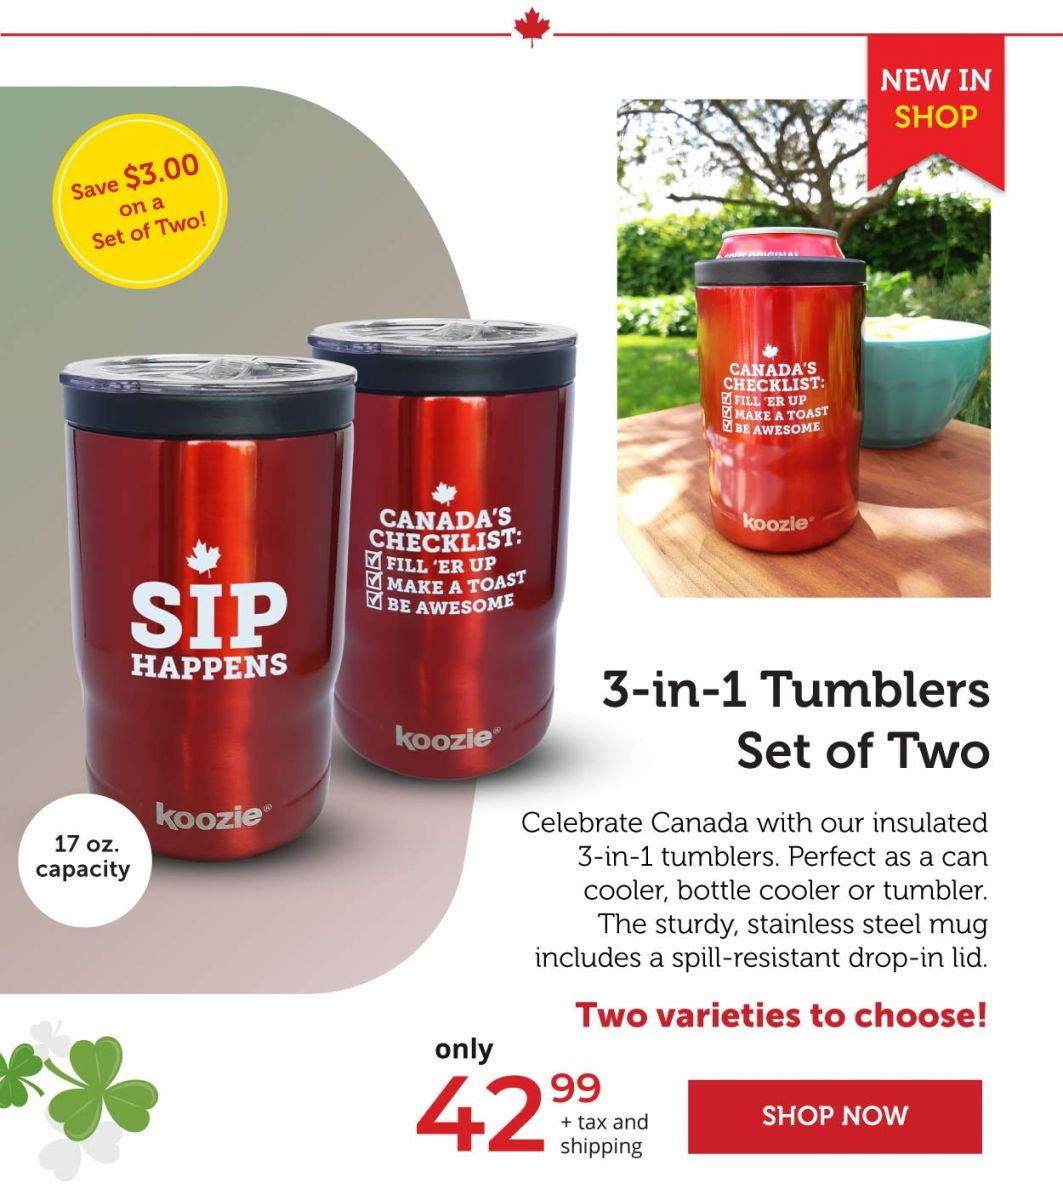 3-in-1 Tumbler set of two